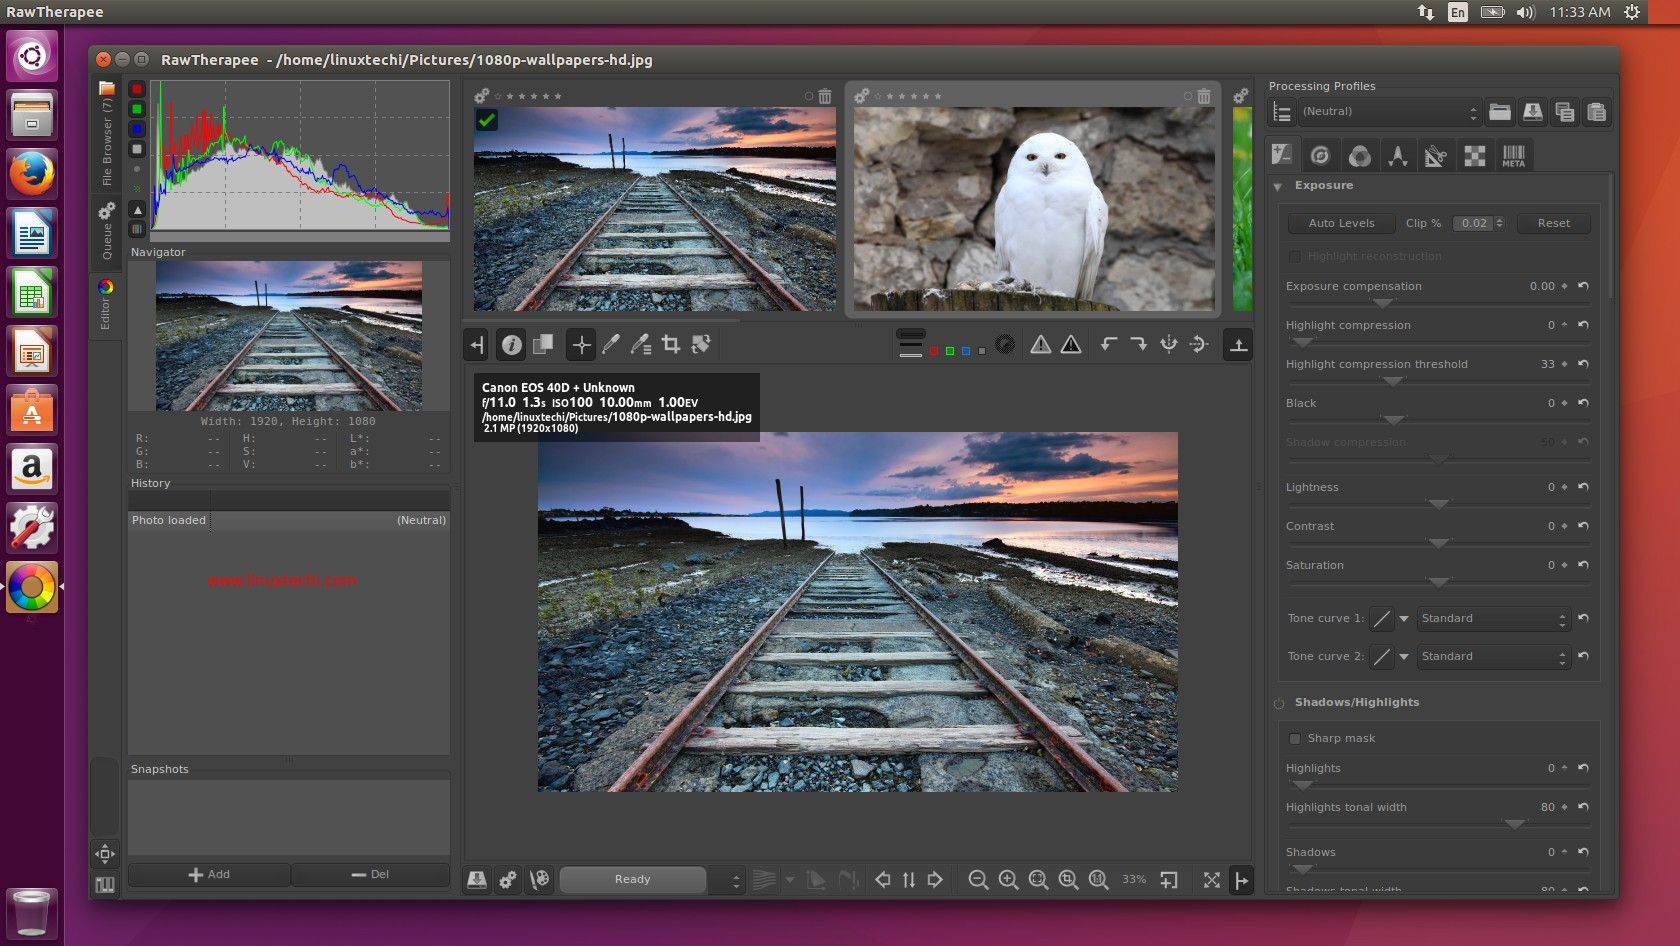 Top 12 Image Editor Tools for Linux Desktop